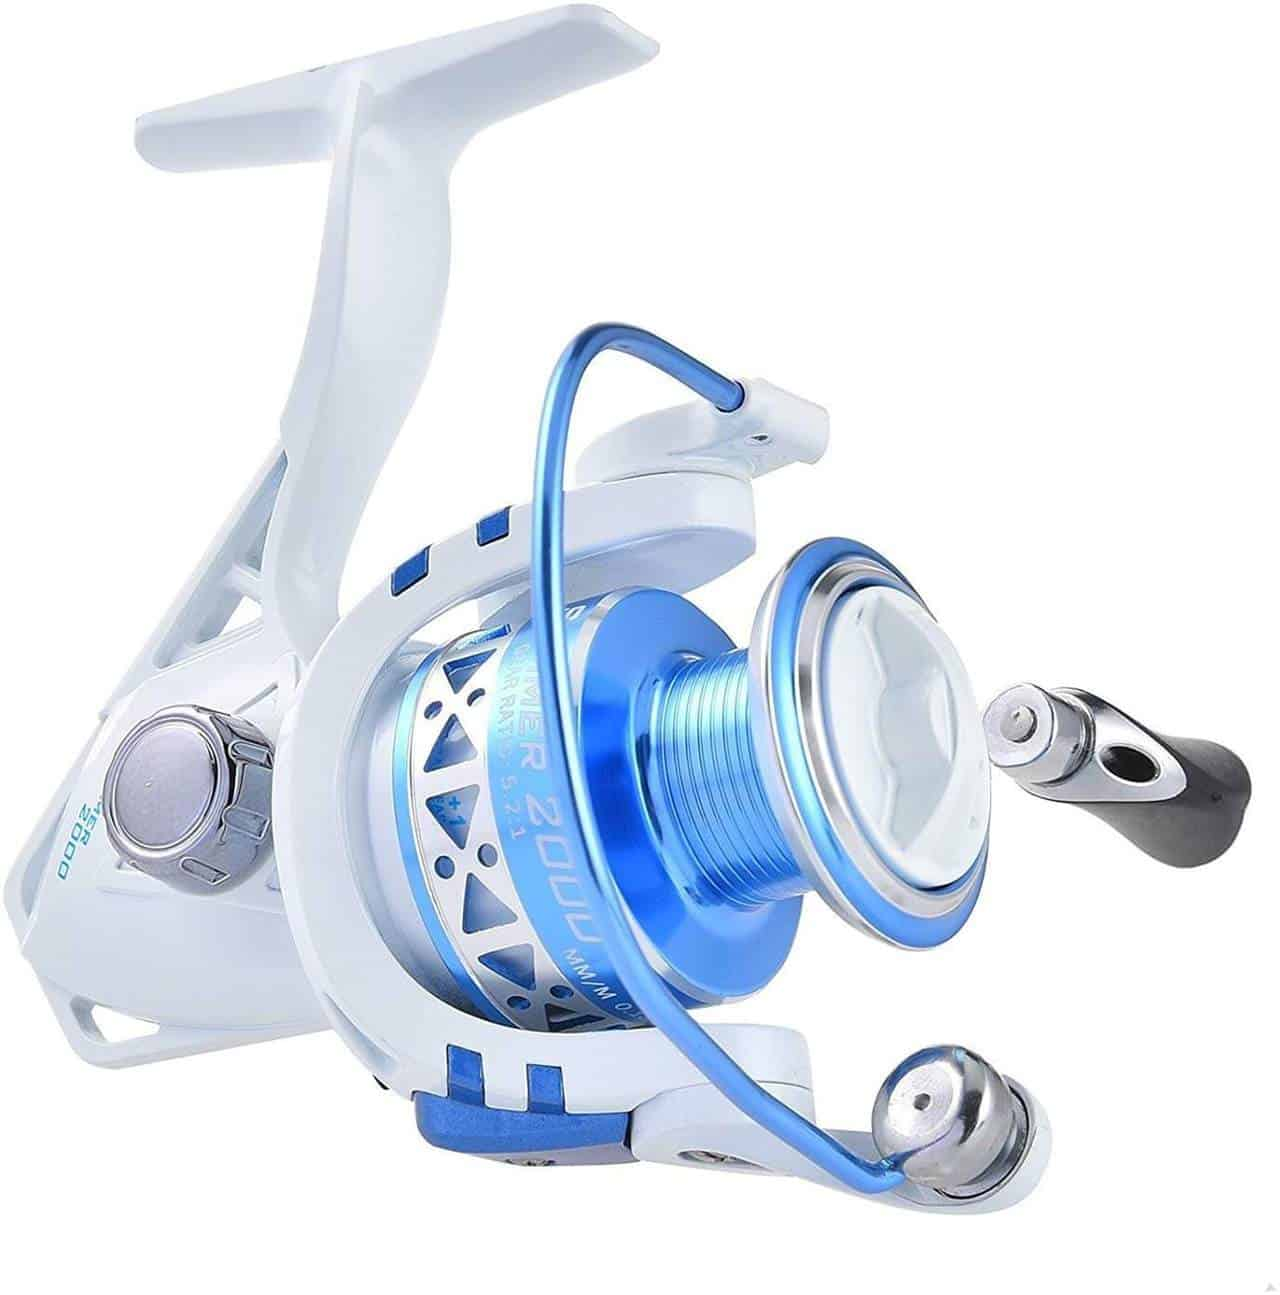 KastKing Summer and Centron Spinning Reels Review